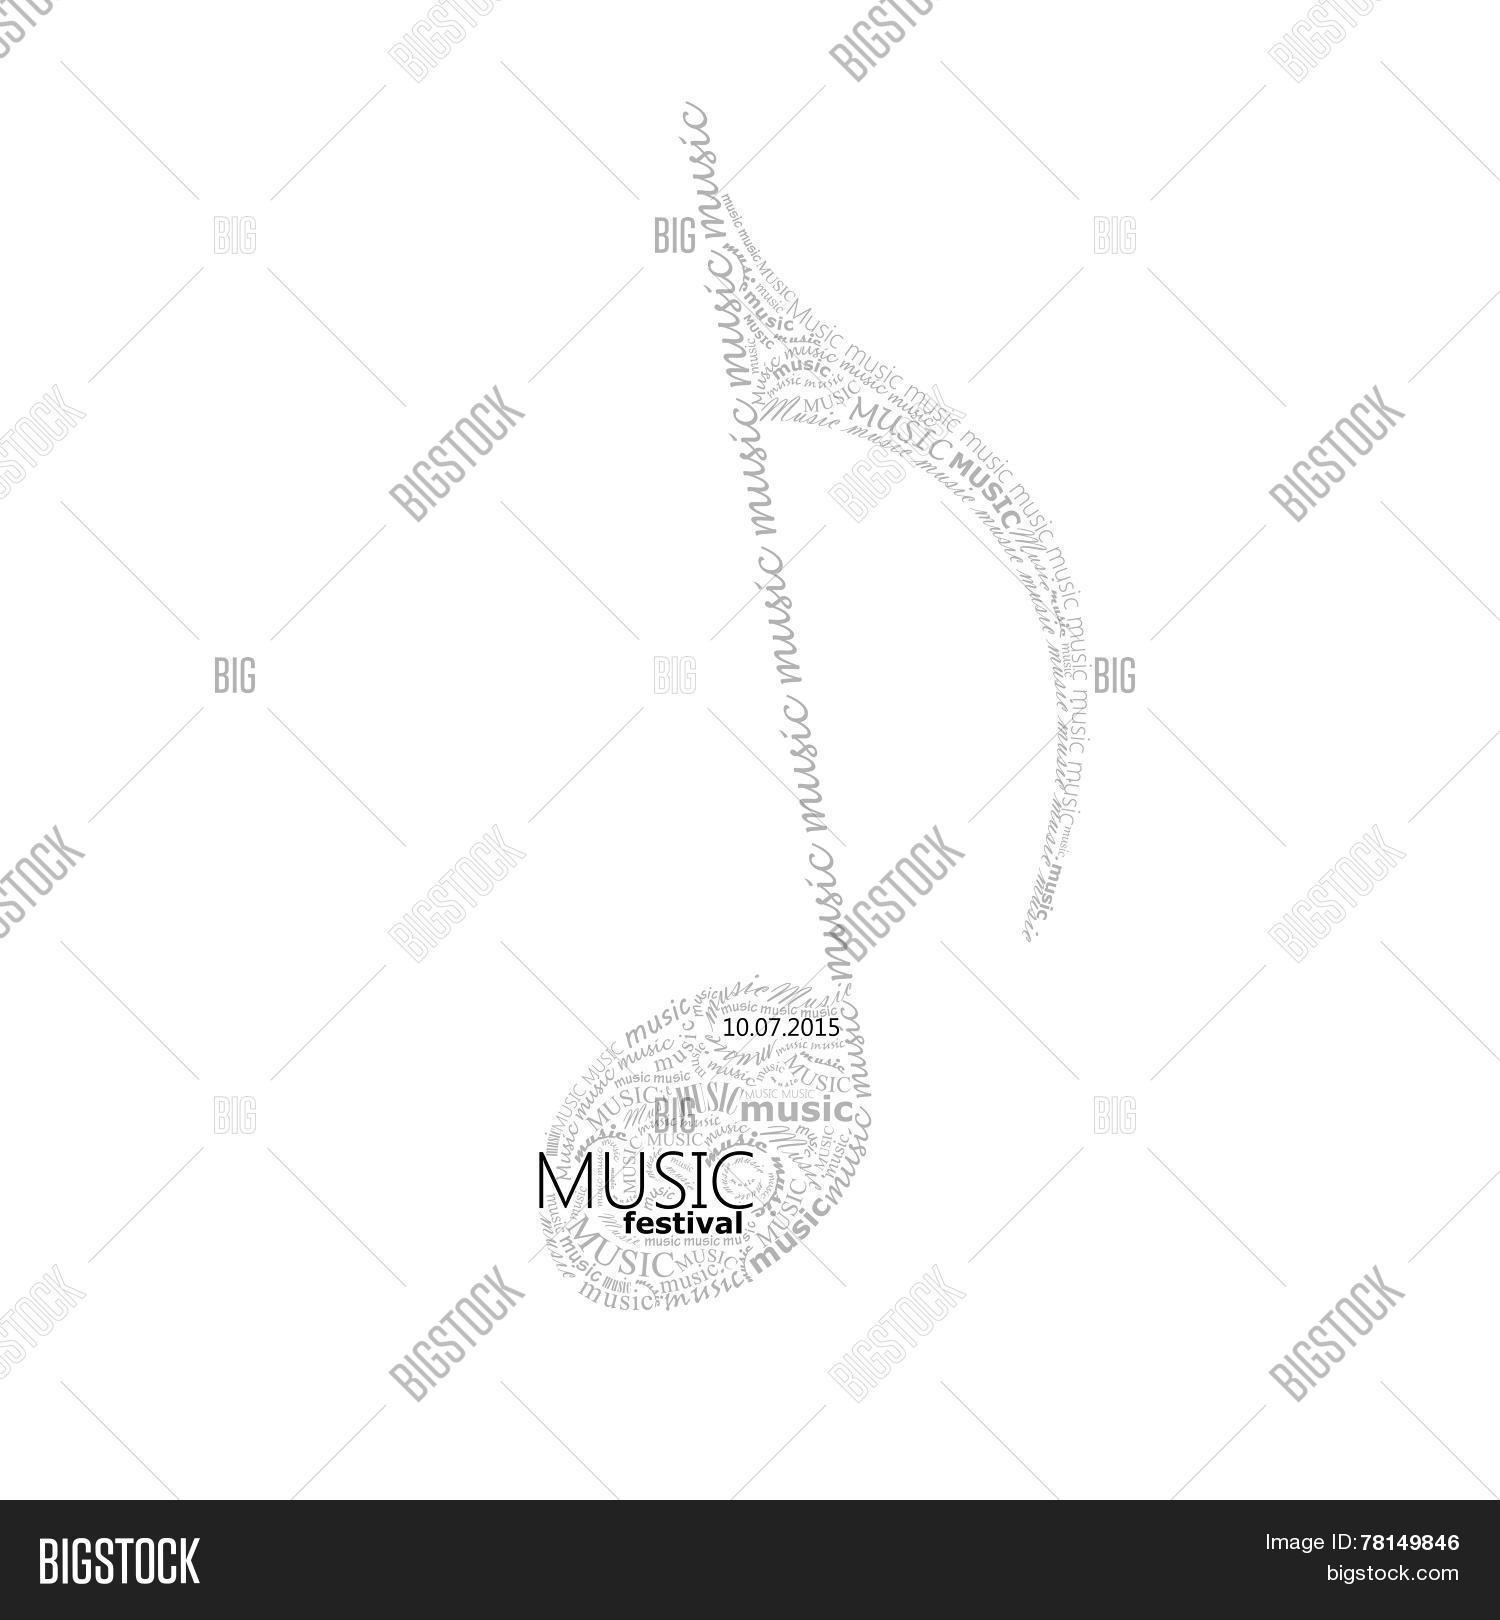 vector music illustration of a music note sign made of